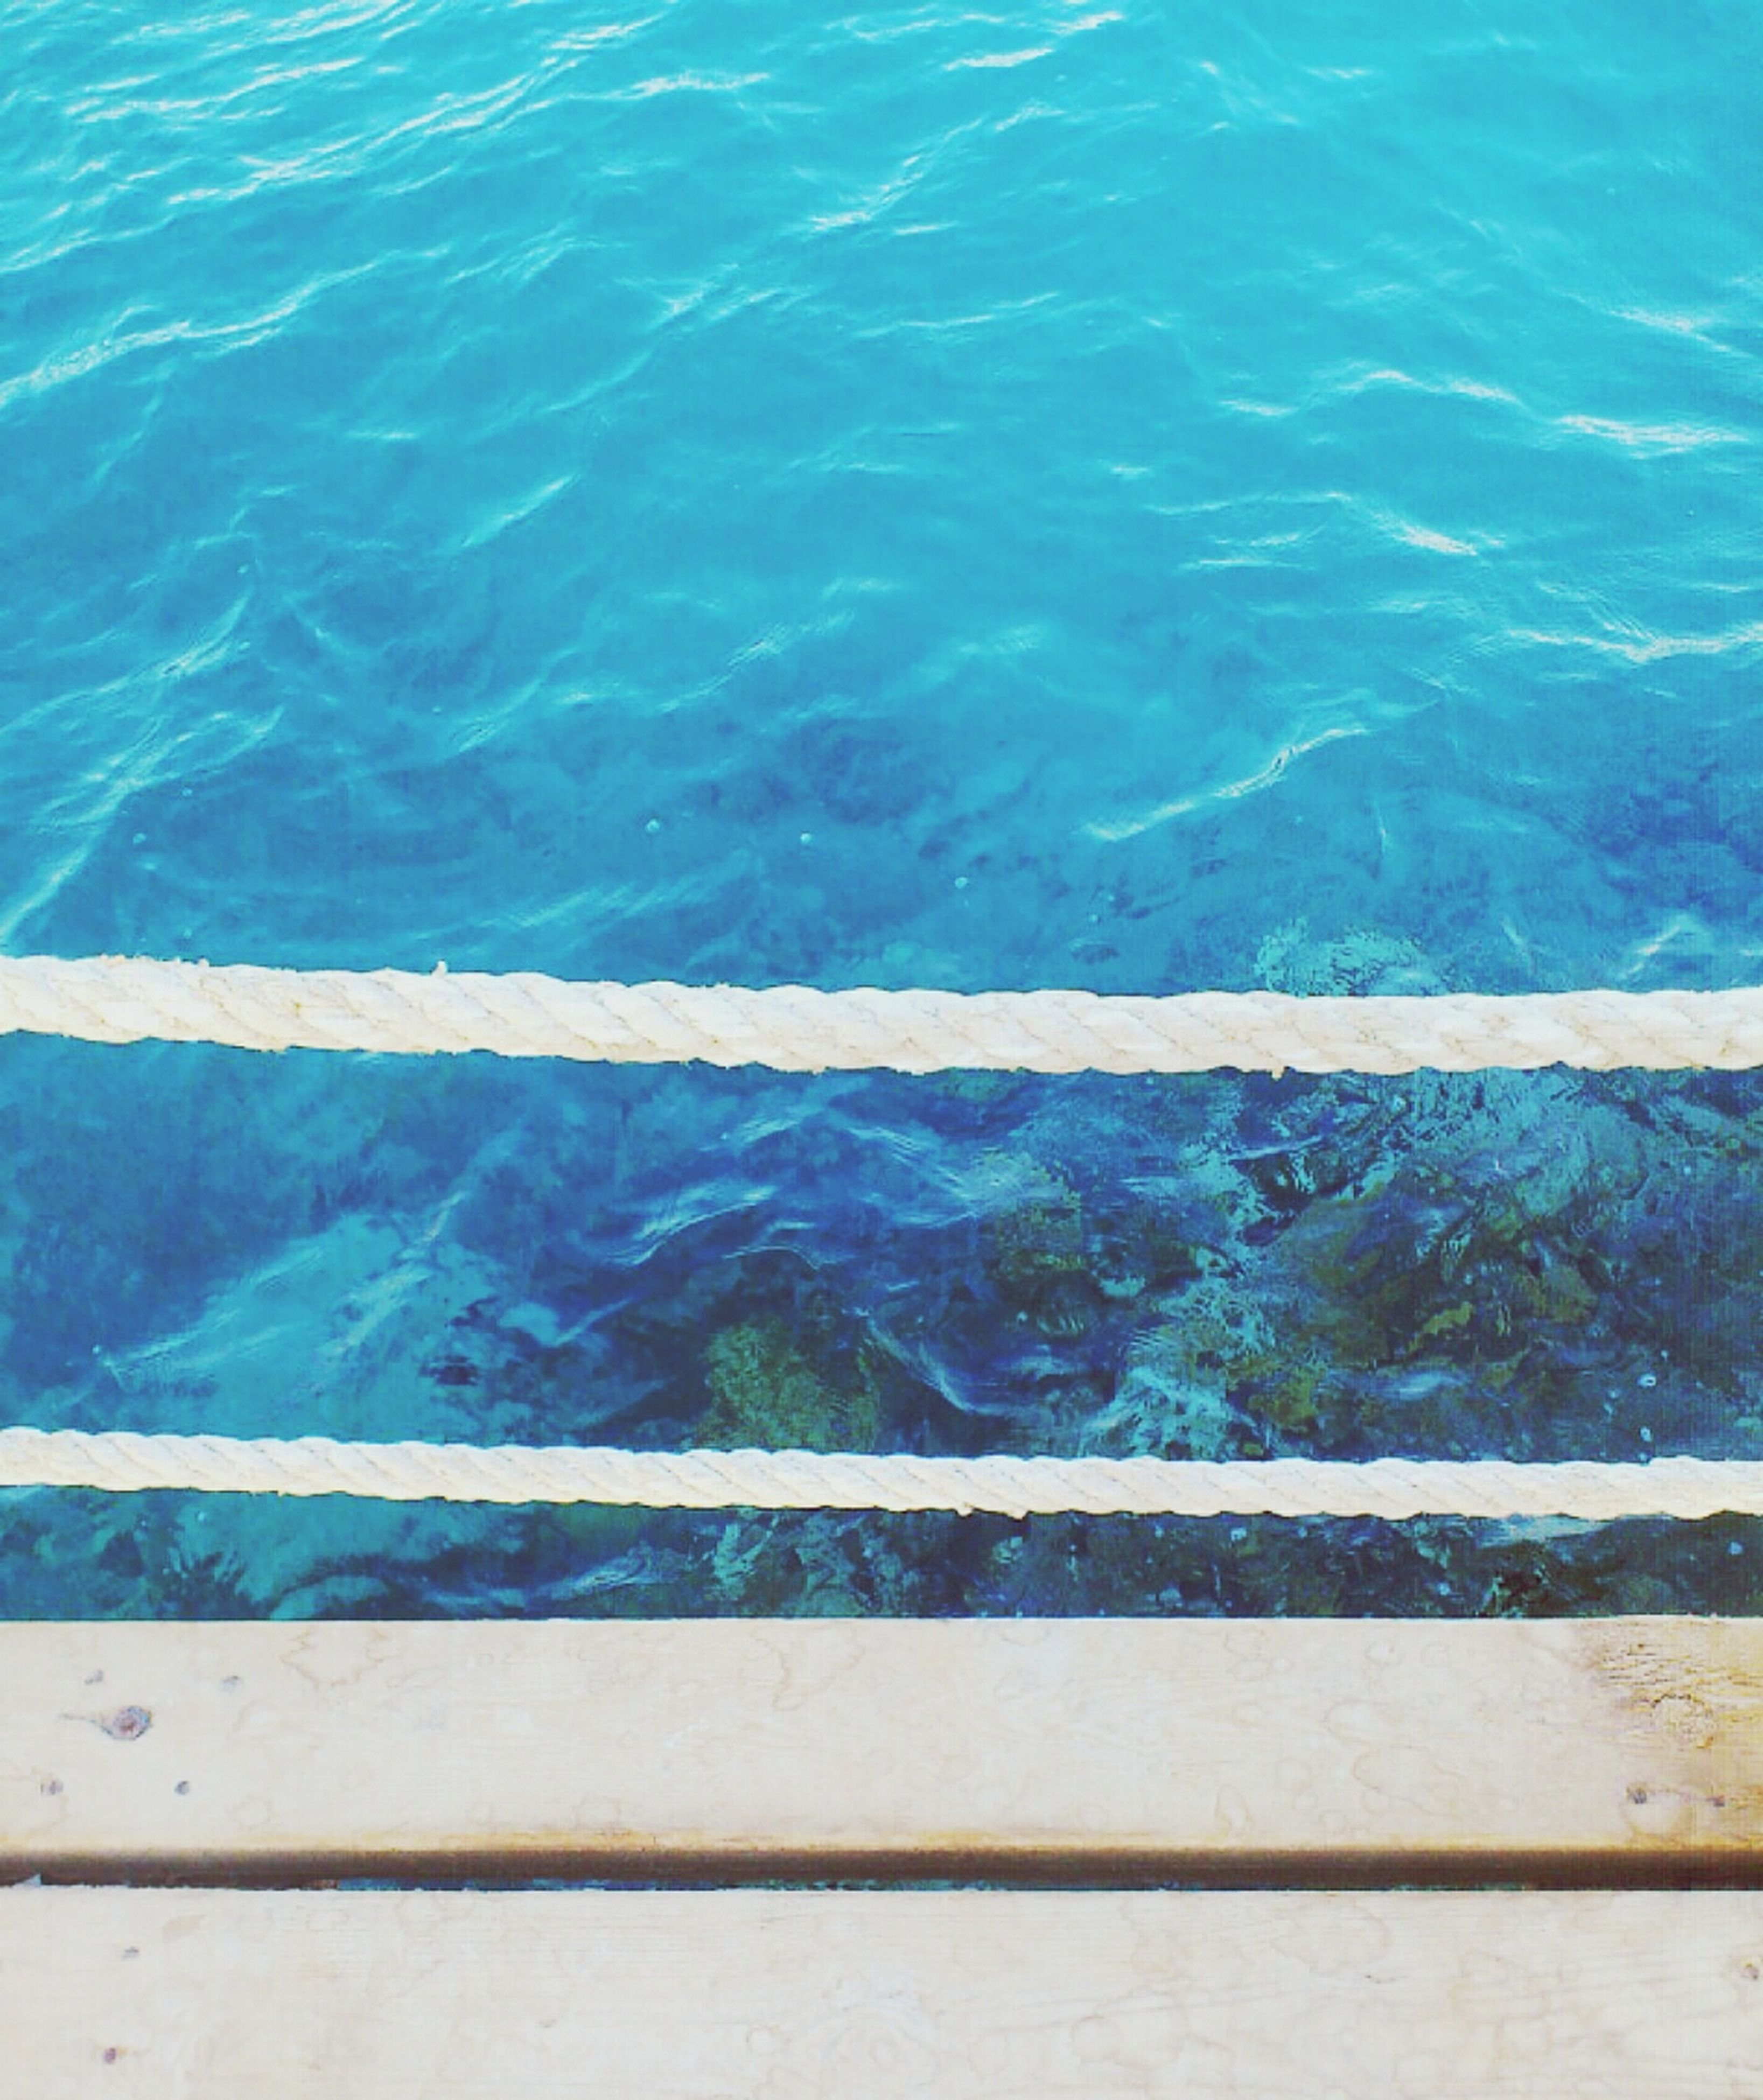 water, blue, high angle view, sea, lake, railing, nature, swimming pool, rippled, turquoise colored, beauty in nature, waterfront, day, tranquility, river, outdoors, no people, scenics, tranquil scene, elevated view